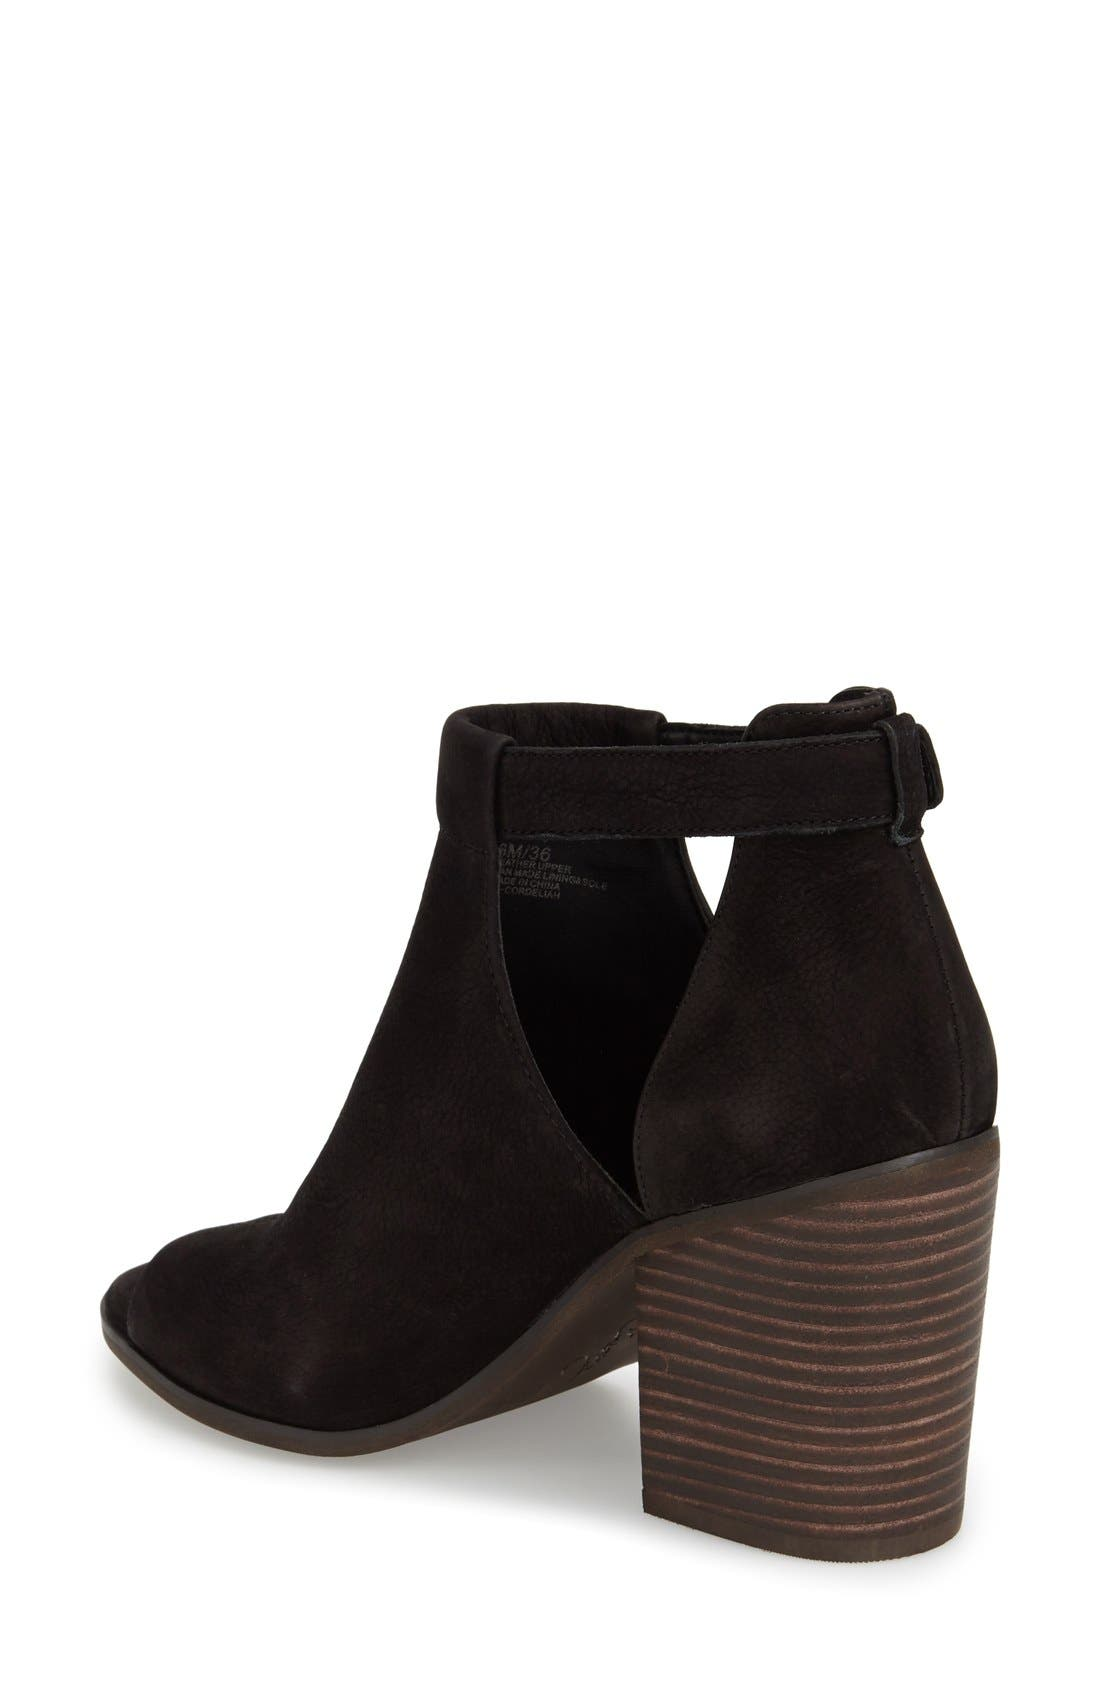 'Cordeliah' Split Shaft Peep Toe Bootie,                             Alternate thumbnail 2, color,                             Black Leather